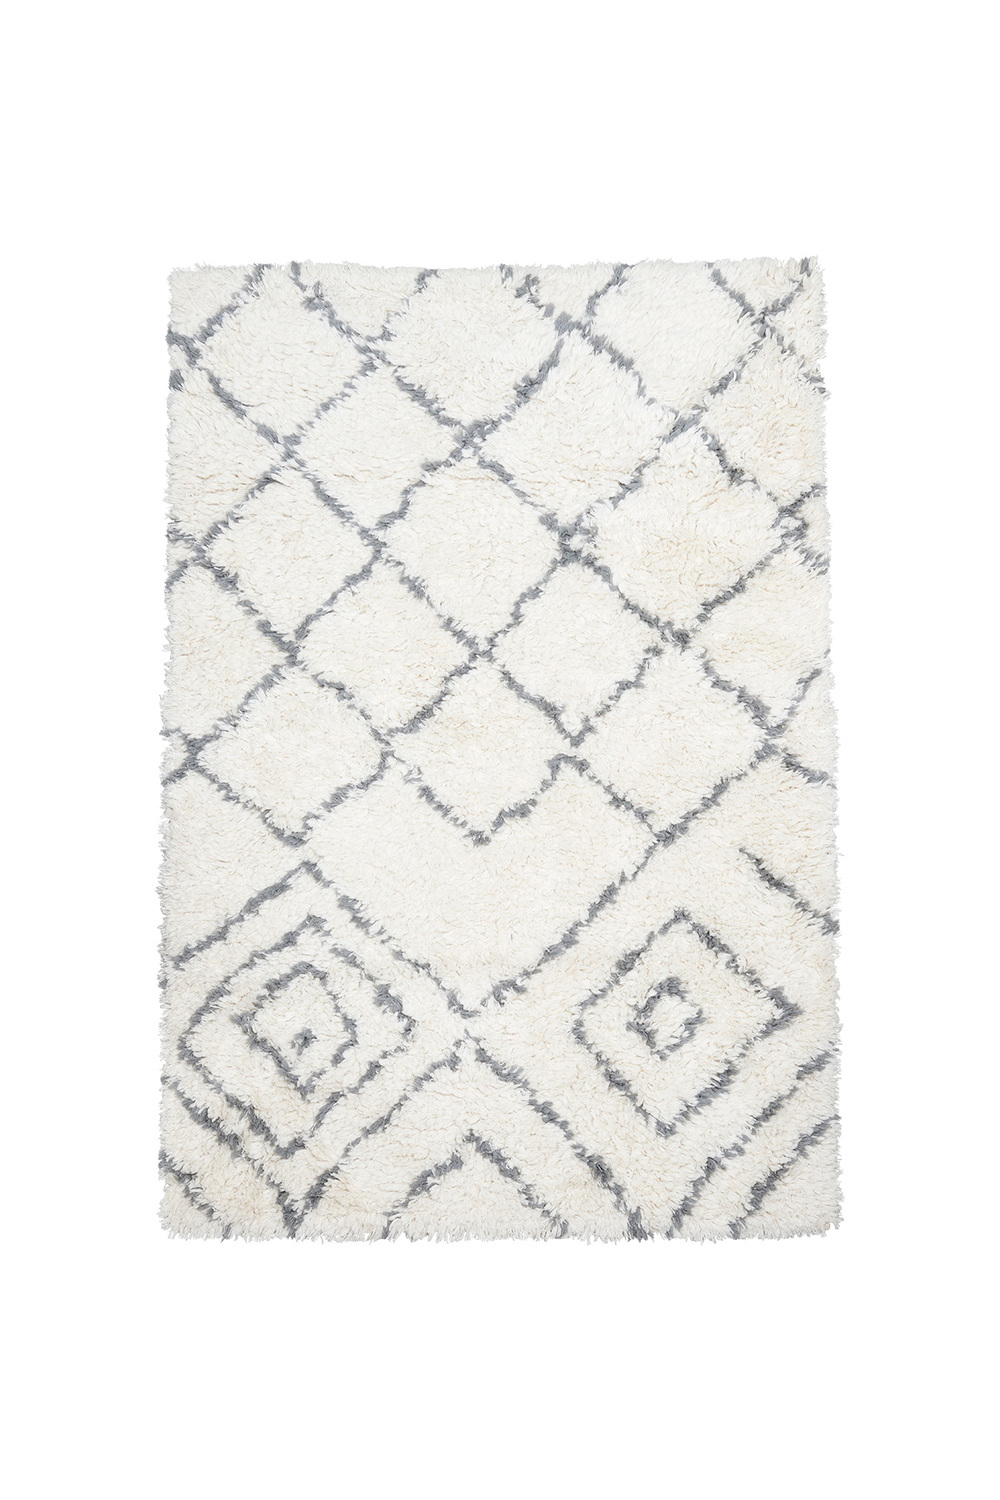 Rug Kuba, from Idyll Home